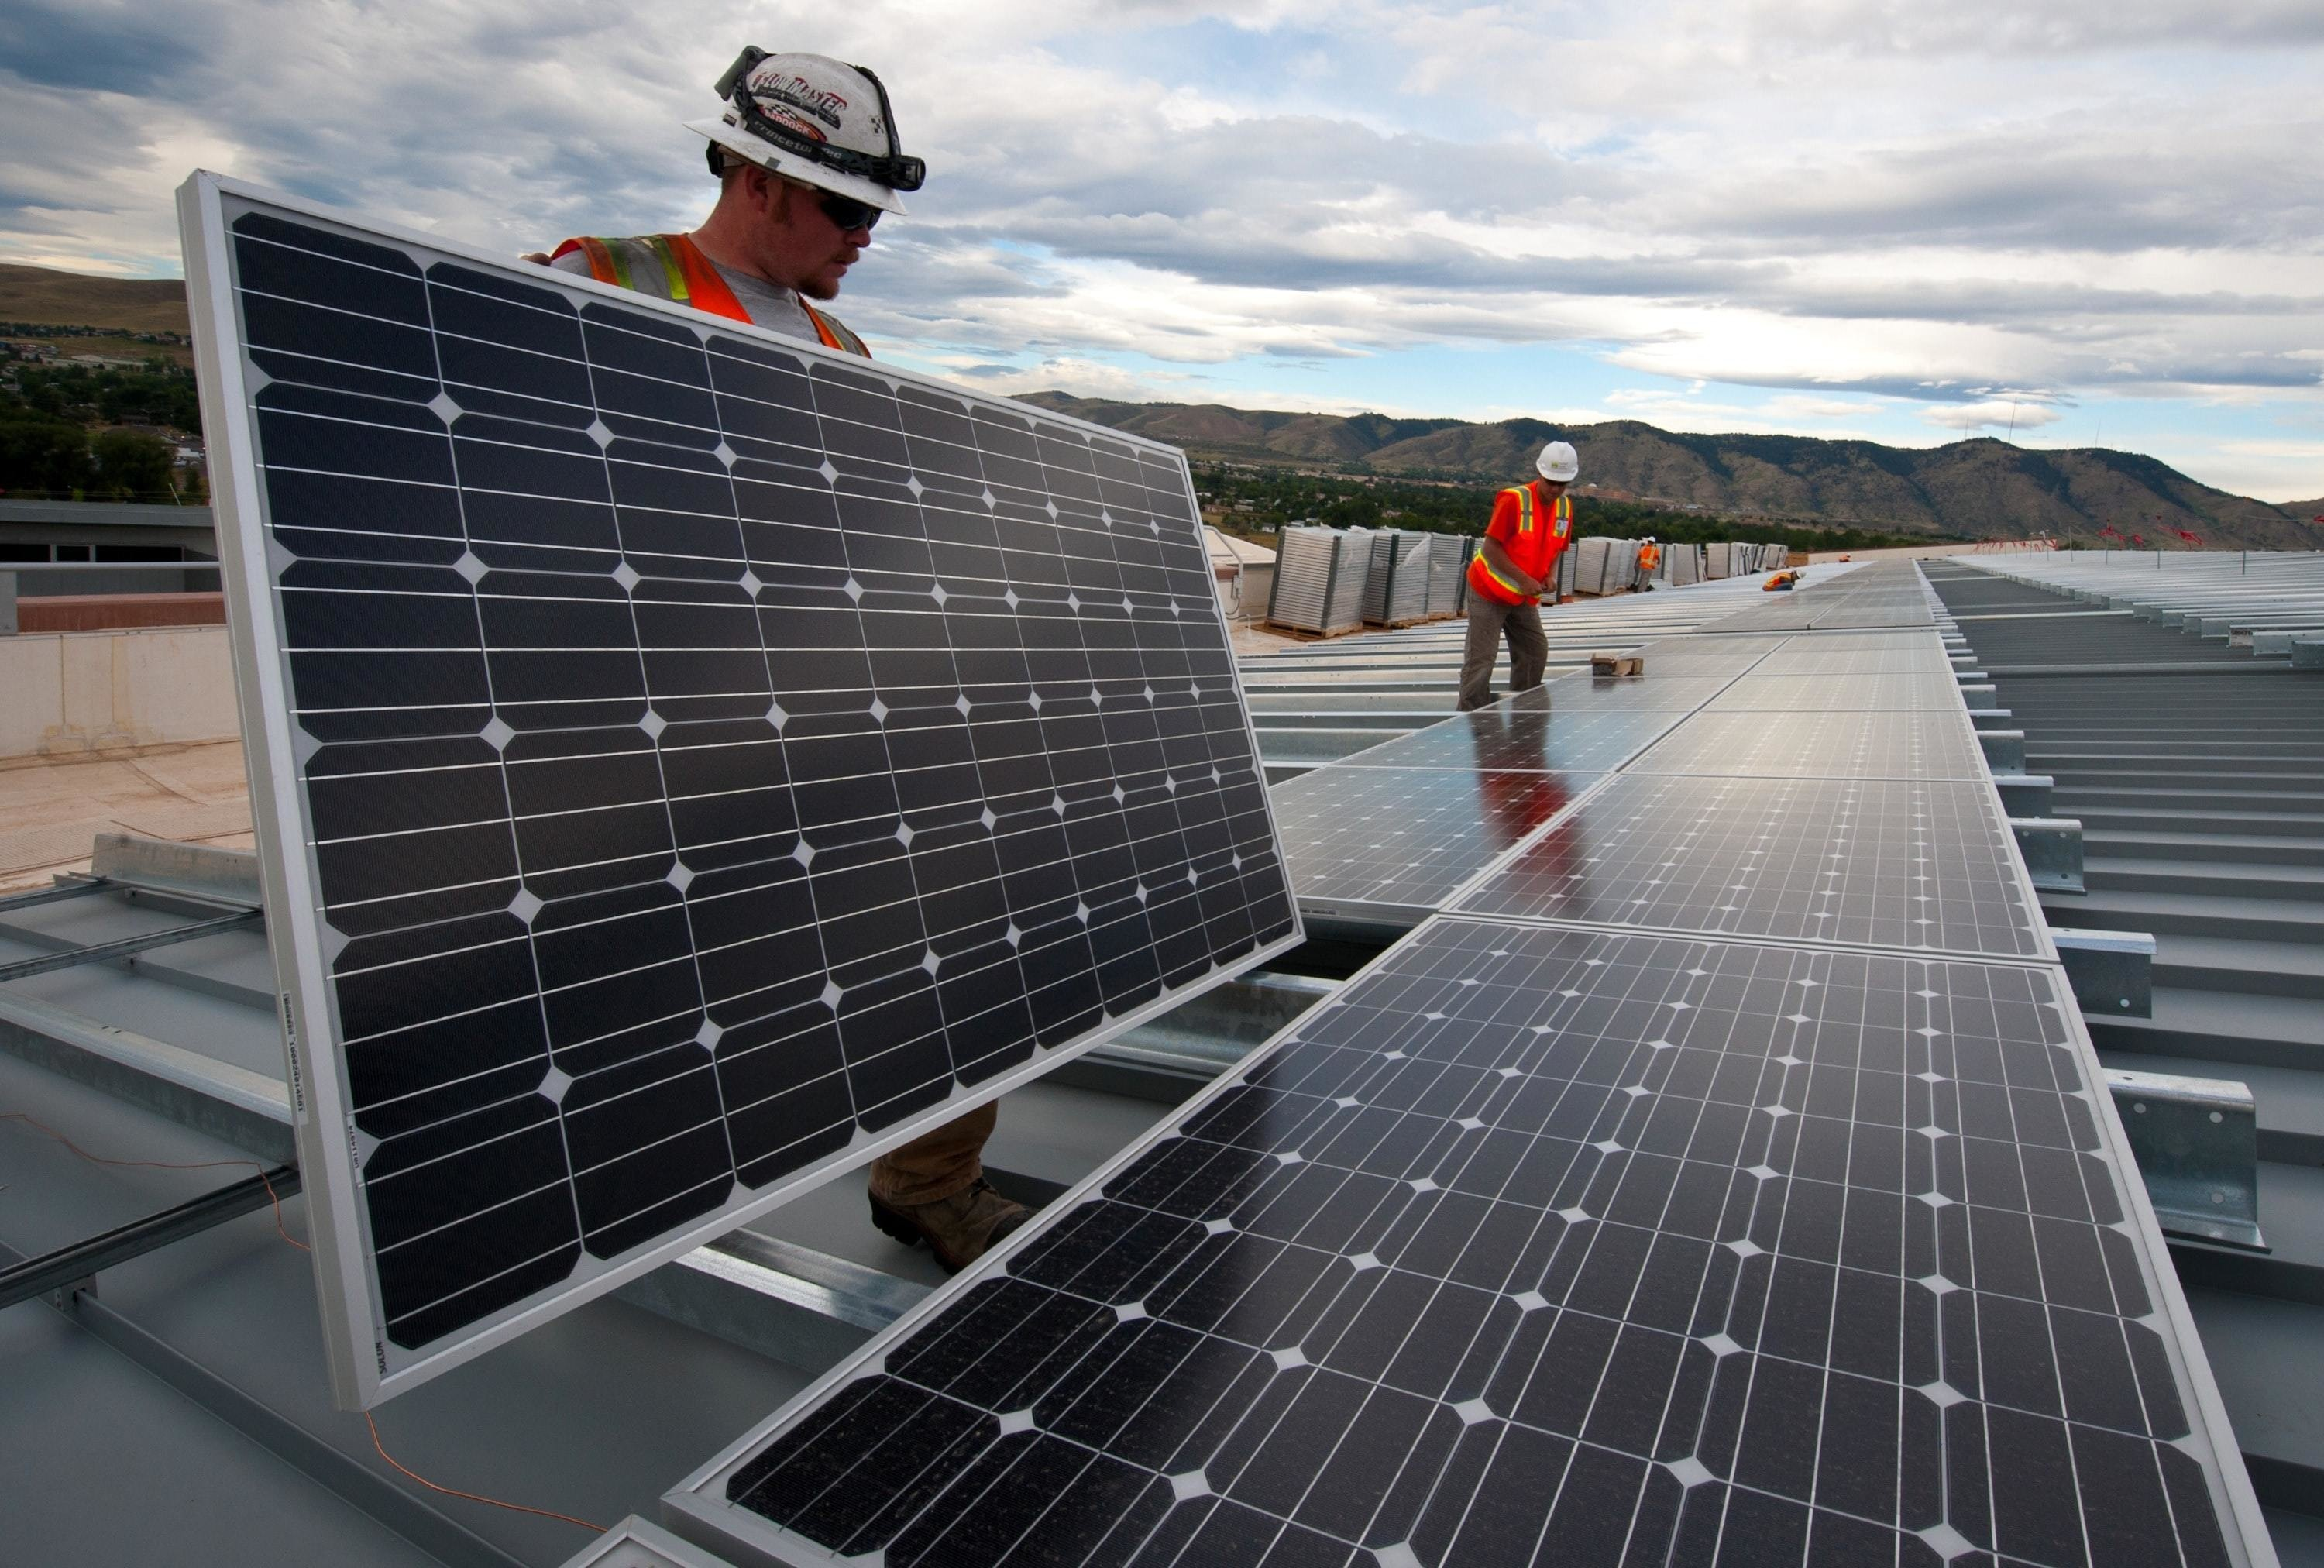 image of 2 men installing solar panels in the U.S. A successful transition to a green economy is possible, but not without proactive planning and open dialogues with workers and communities impacted by the shift